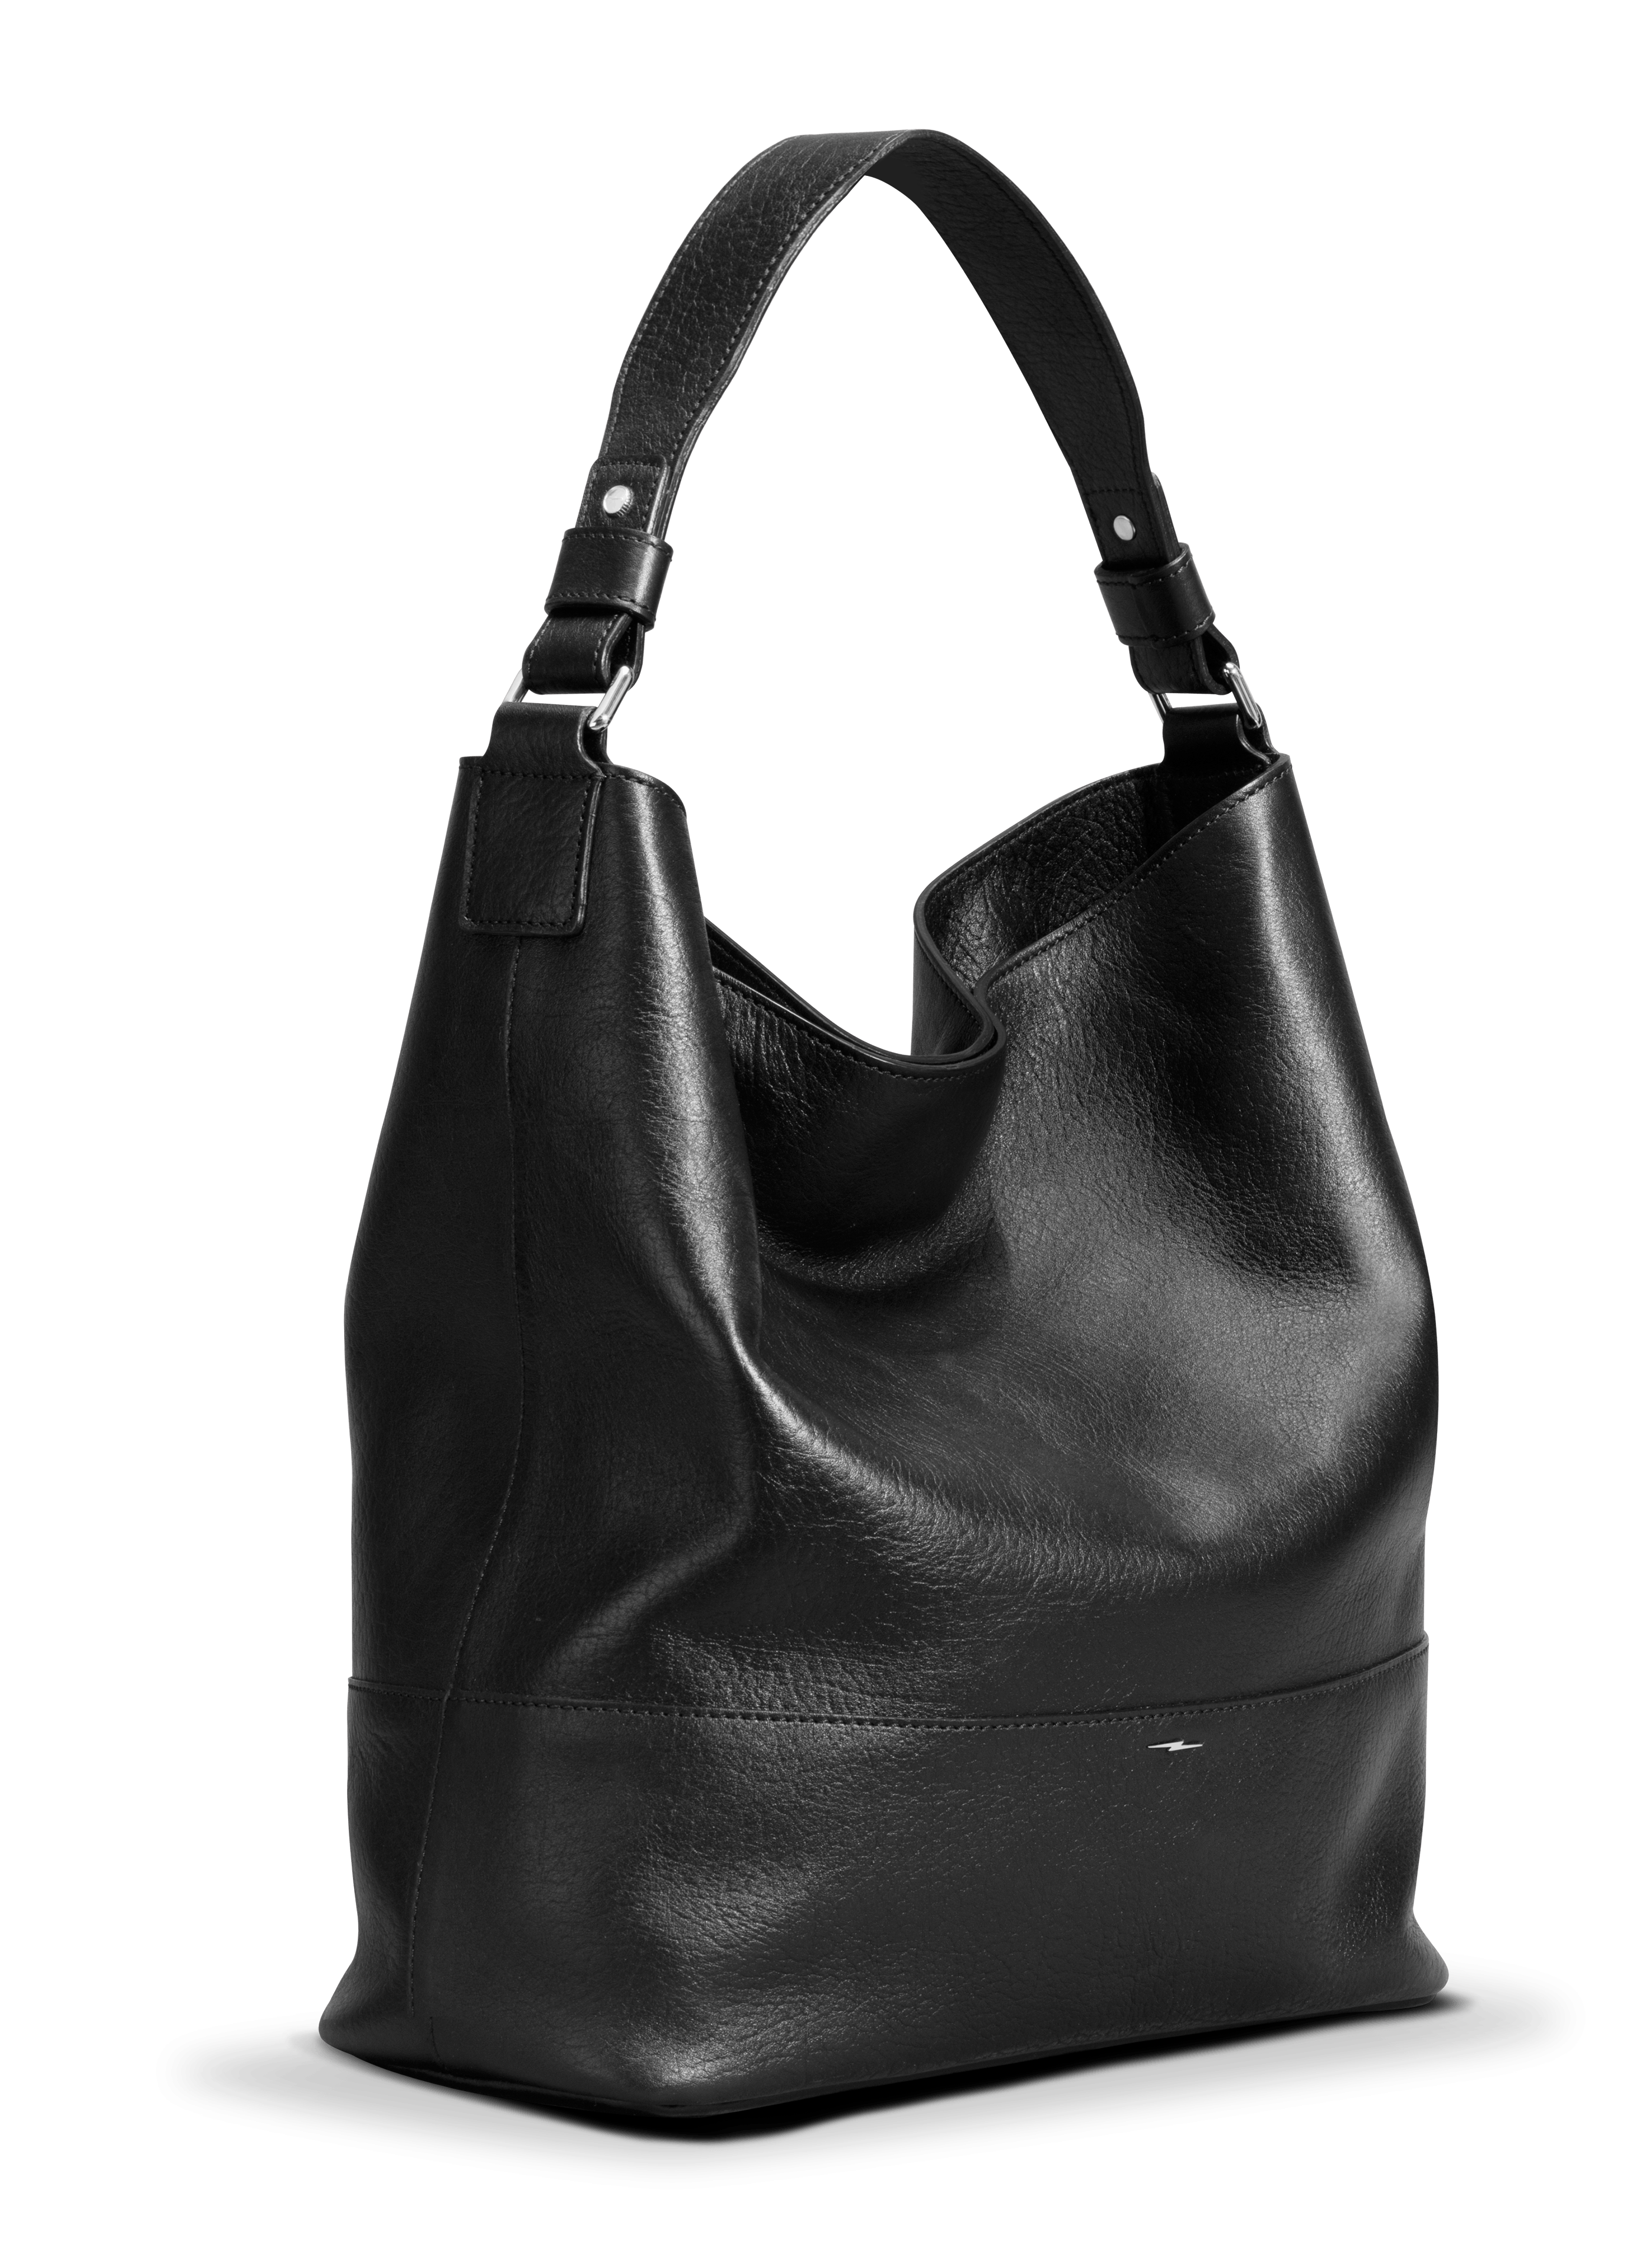 Women's Leather Bag - Relaxed Hobo | Shinola® Detroit